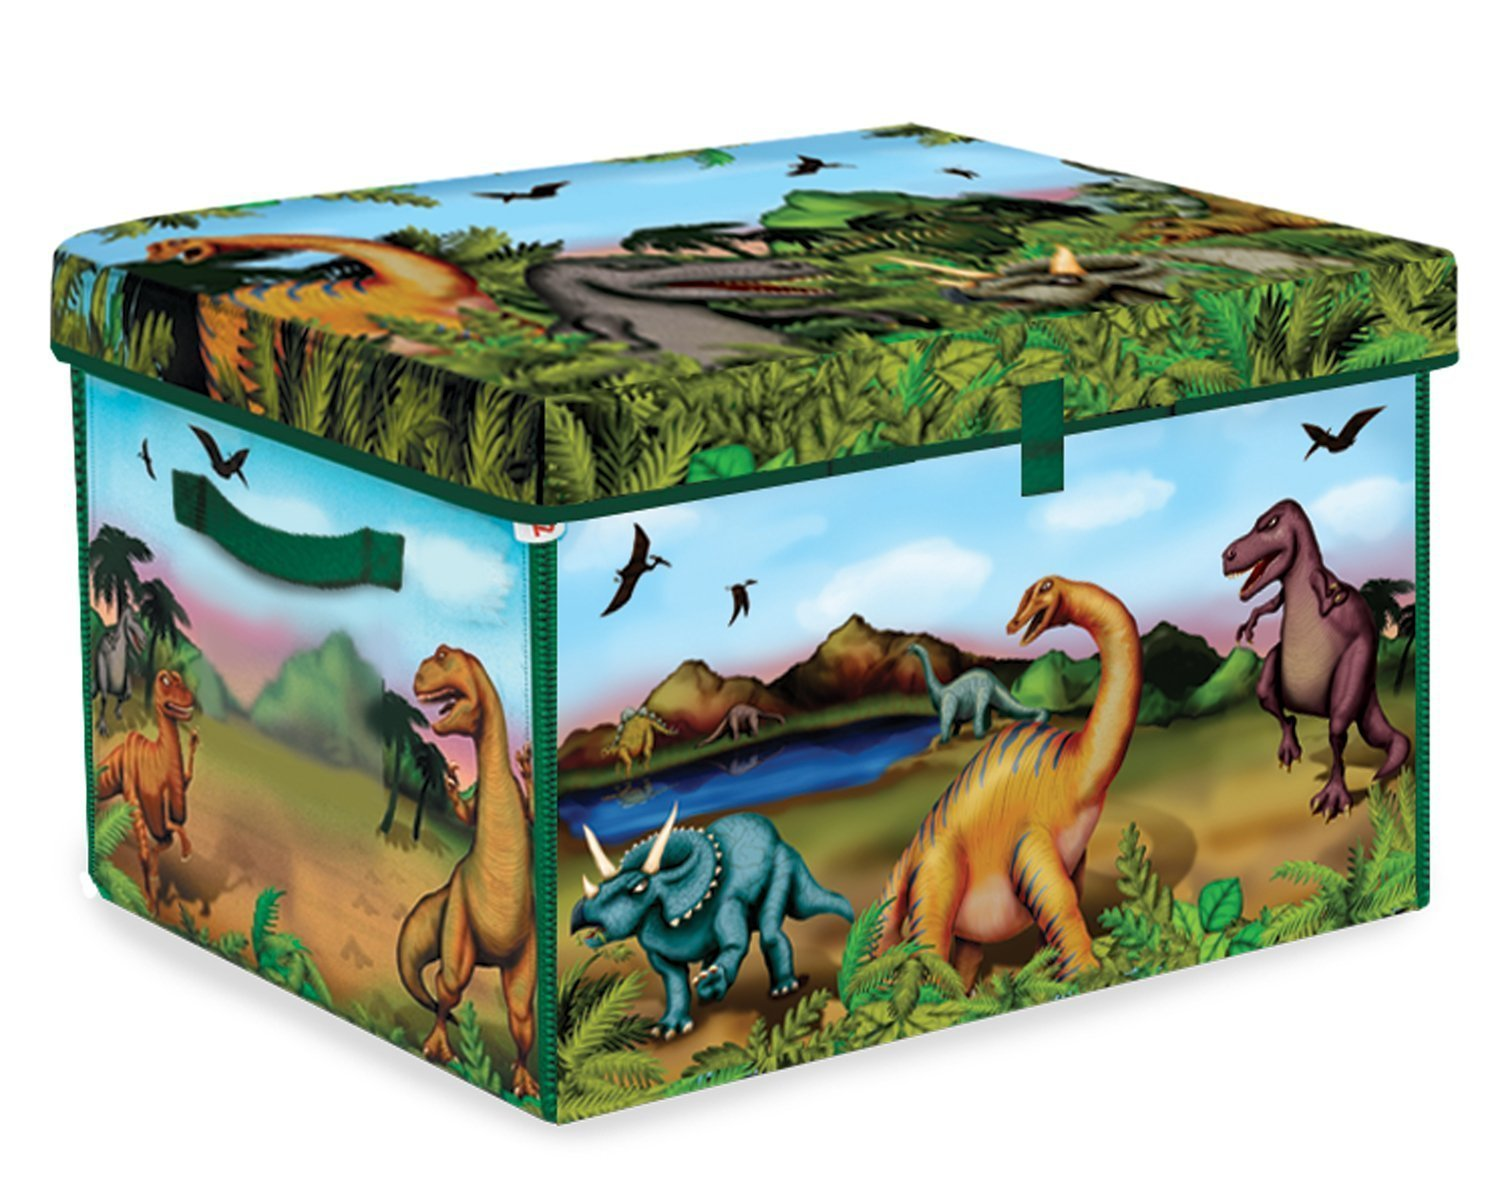 Neat-Oh! 160 Dinosaur Collector Toy Box & Playset w  2 Dinosaurs, USA, Brand ZipBin by